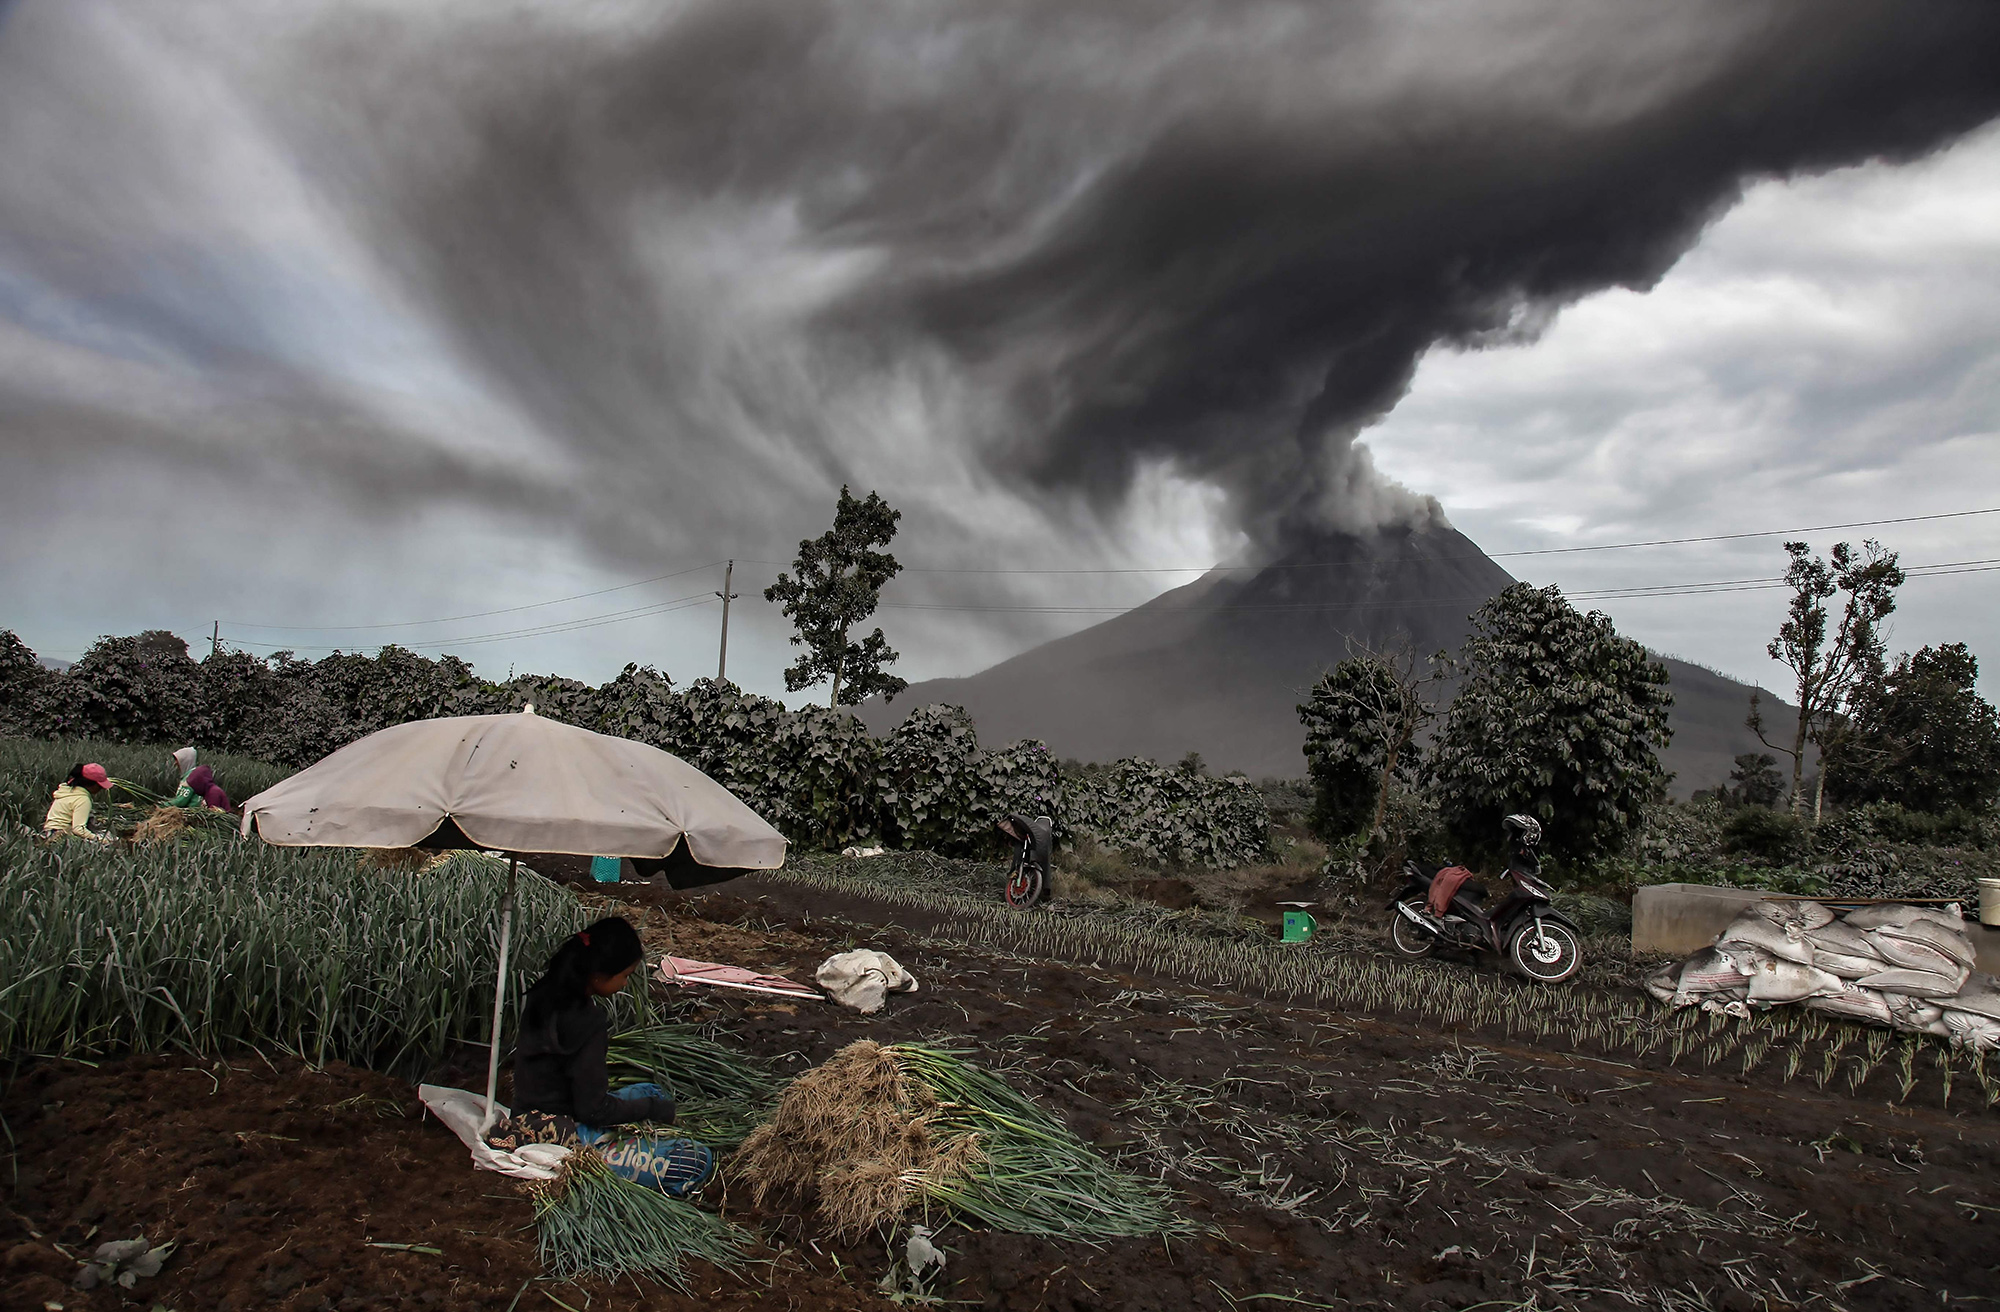 Farmers harvest their onion crops as Mount Sinabung spews volcanic ash during an eruption seen from Sukandebi village in Karo on August 14, 2020. - Indonesia is home to about 130 active volcanoes due to its position on the